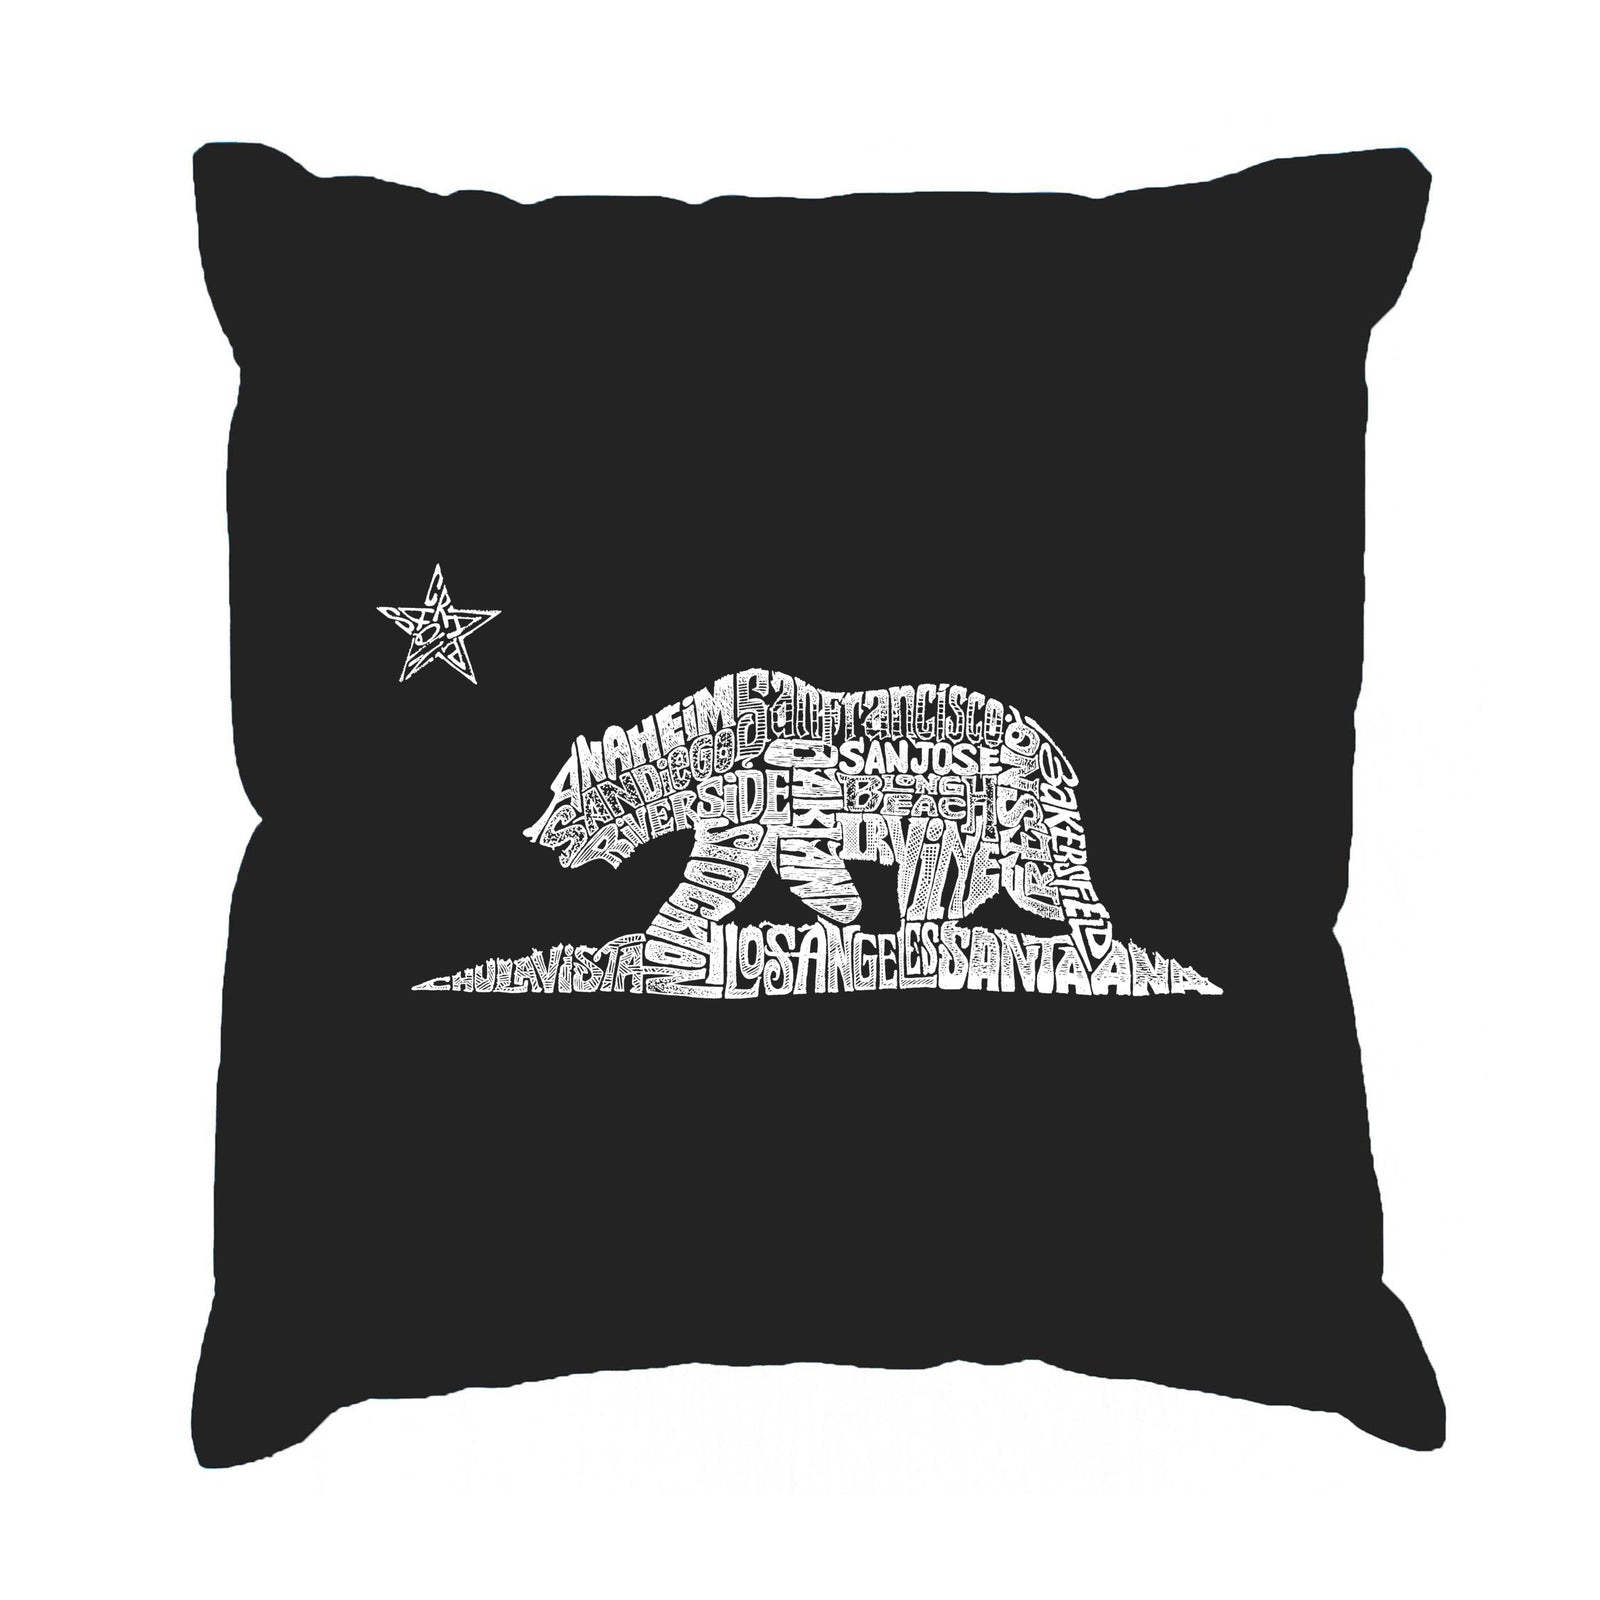 Throw Pillow Cover - California Bear